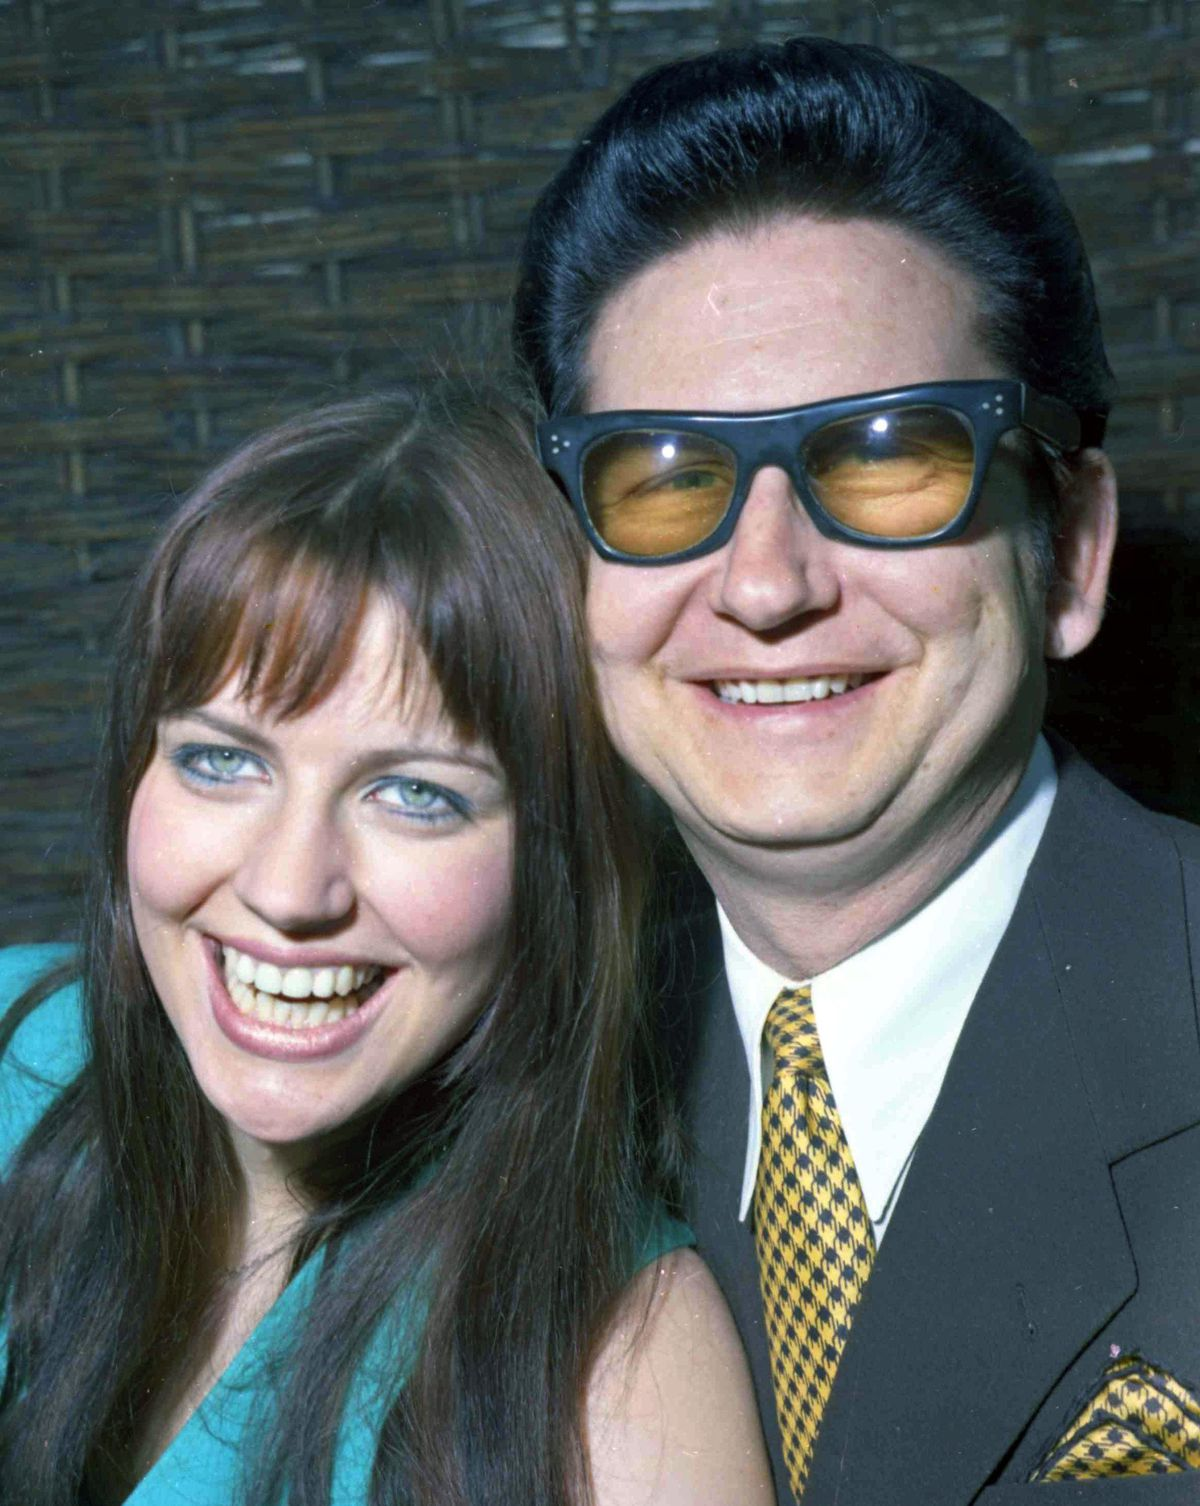 Roy Orbison with his then 18-year-old wife Barbara and mum of Roy Jr in 1969